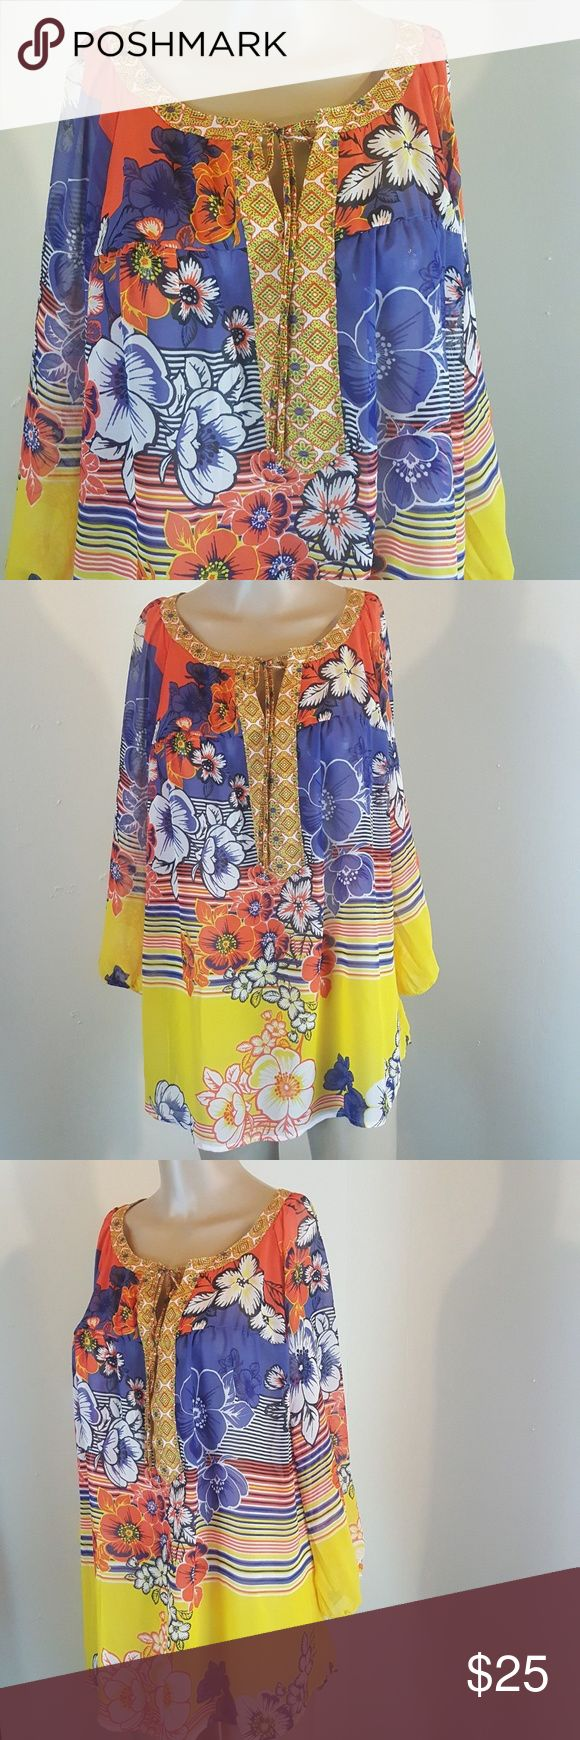 Fig And Flower Women S Blouse Floral Colorful Size